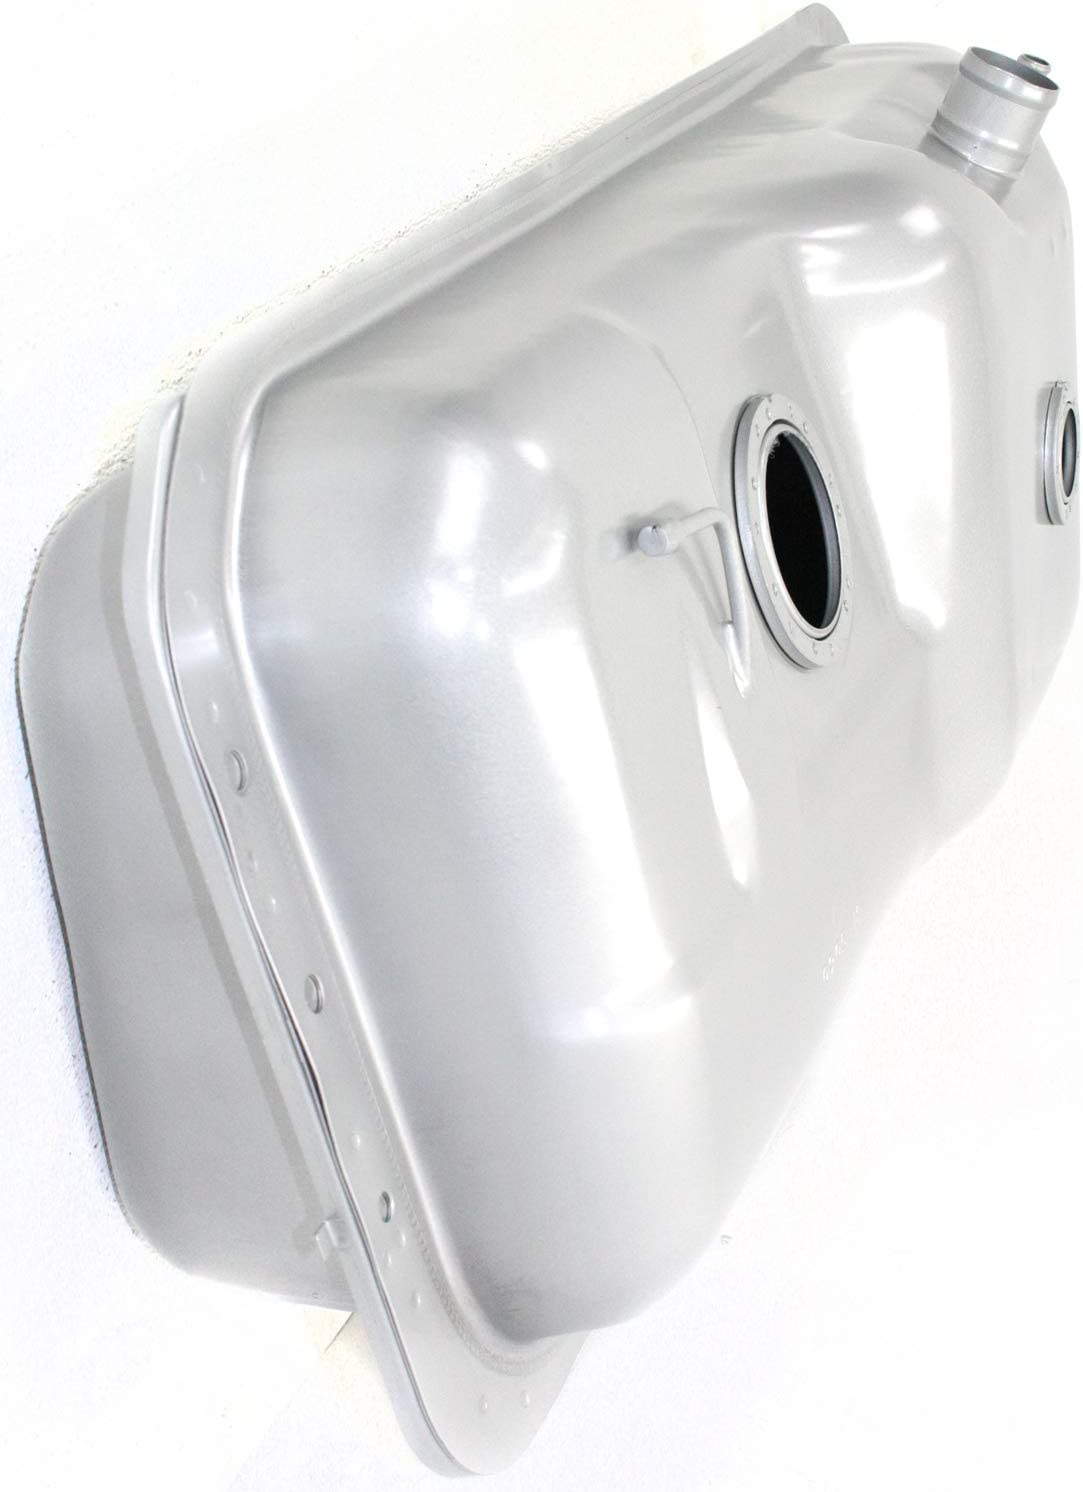 Fuel Tank Compatible with Toyota Pickup 1989-1995 2WD With Fuel Injection Extended Cab or Long Bed 17 Gal.